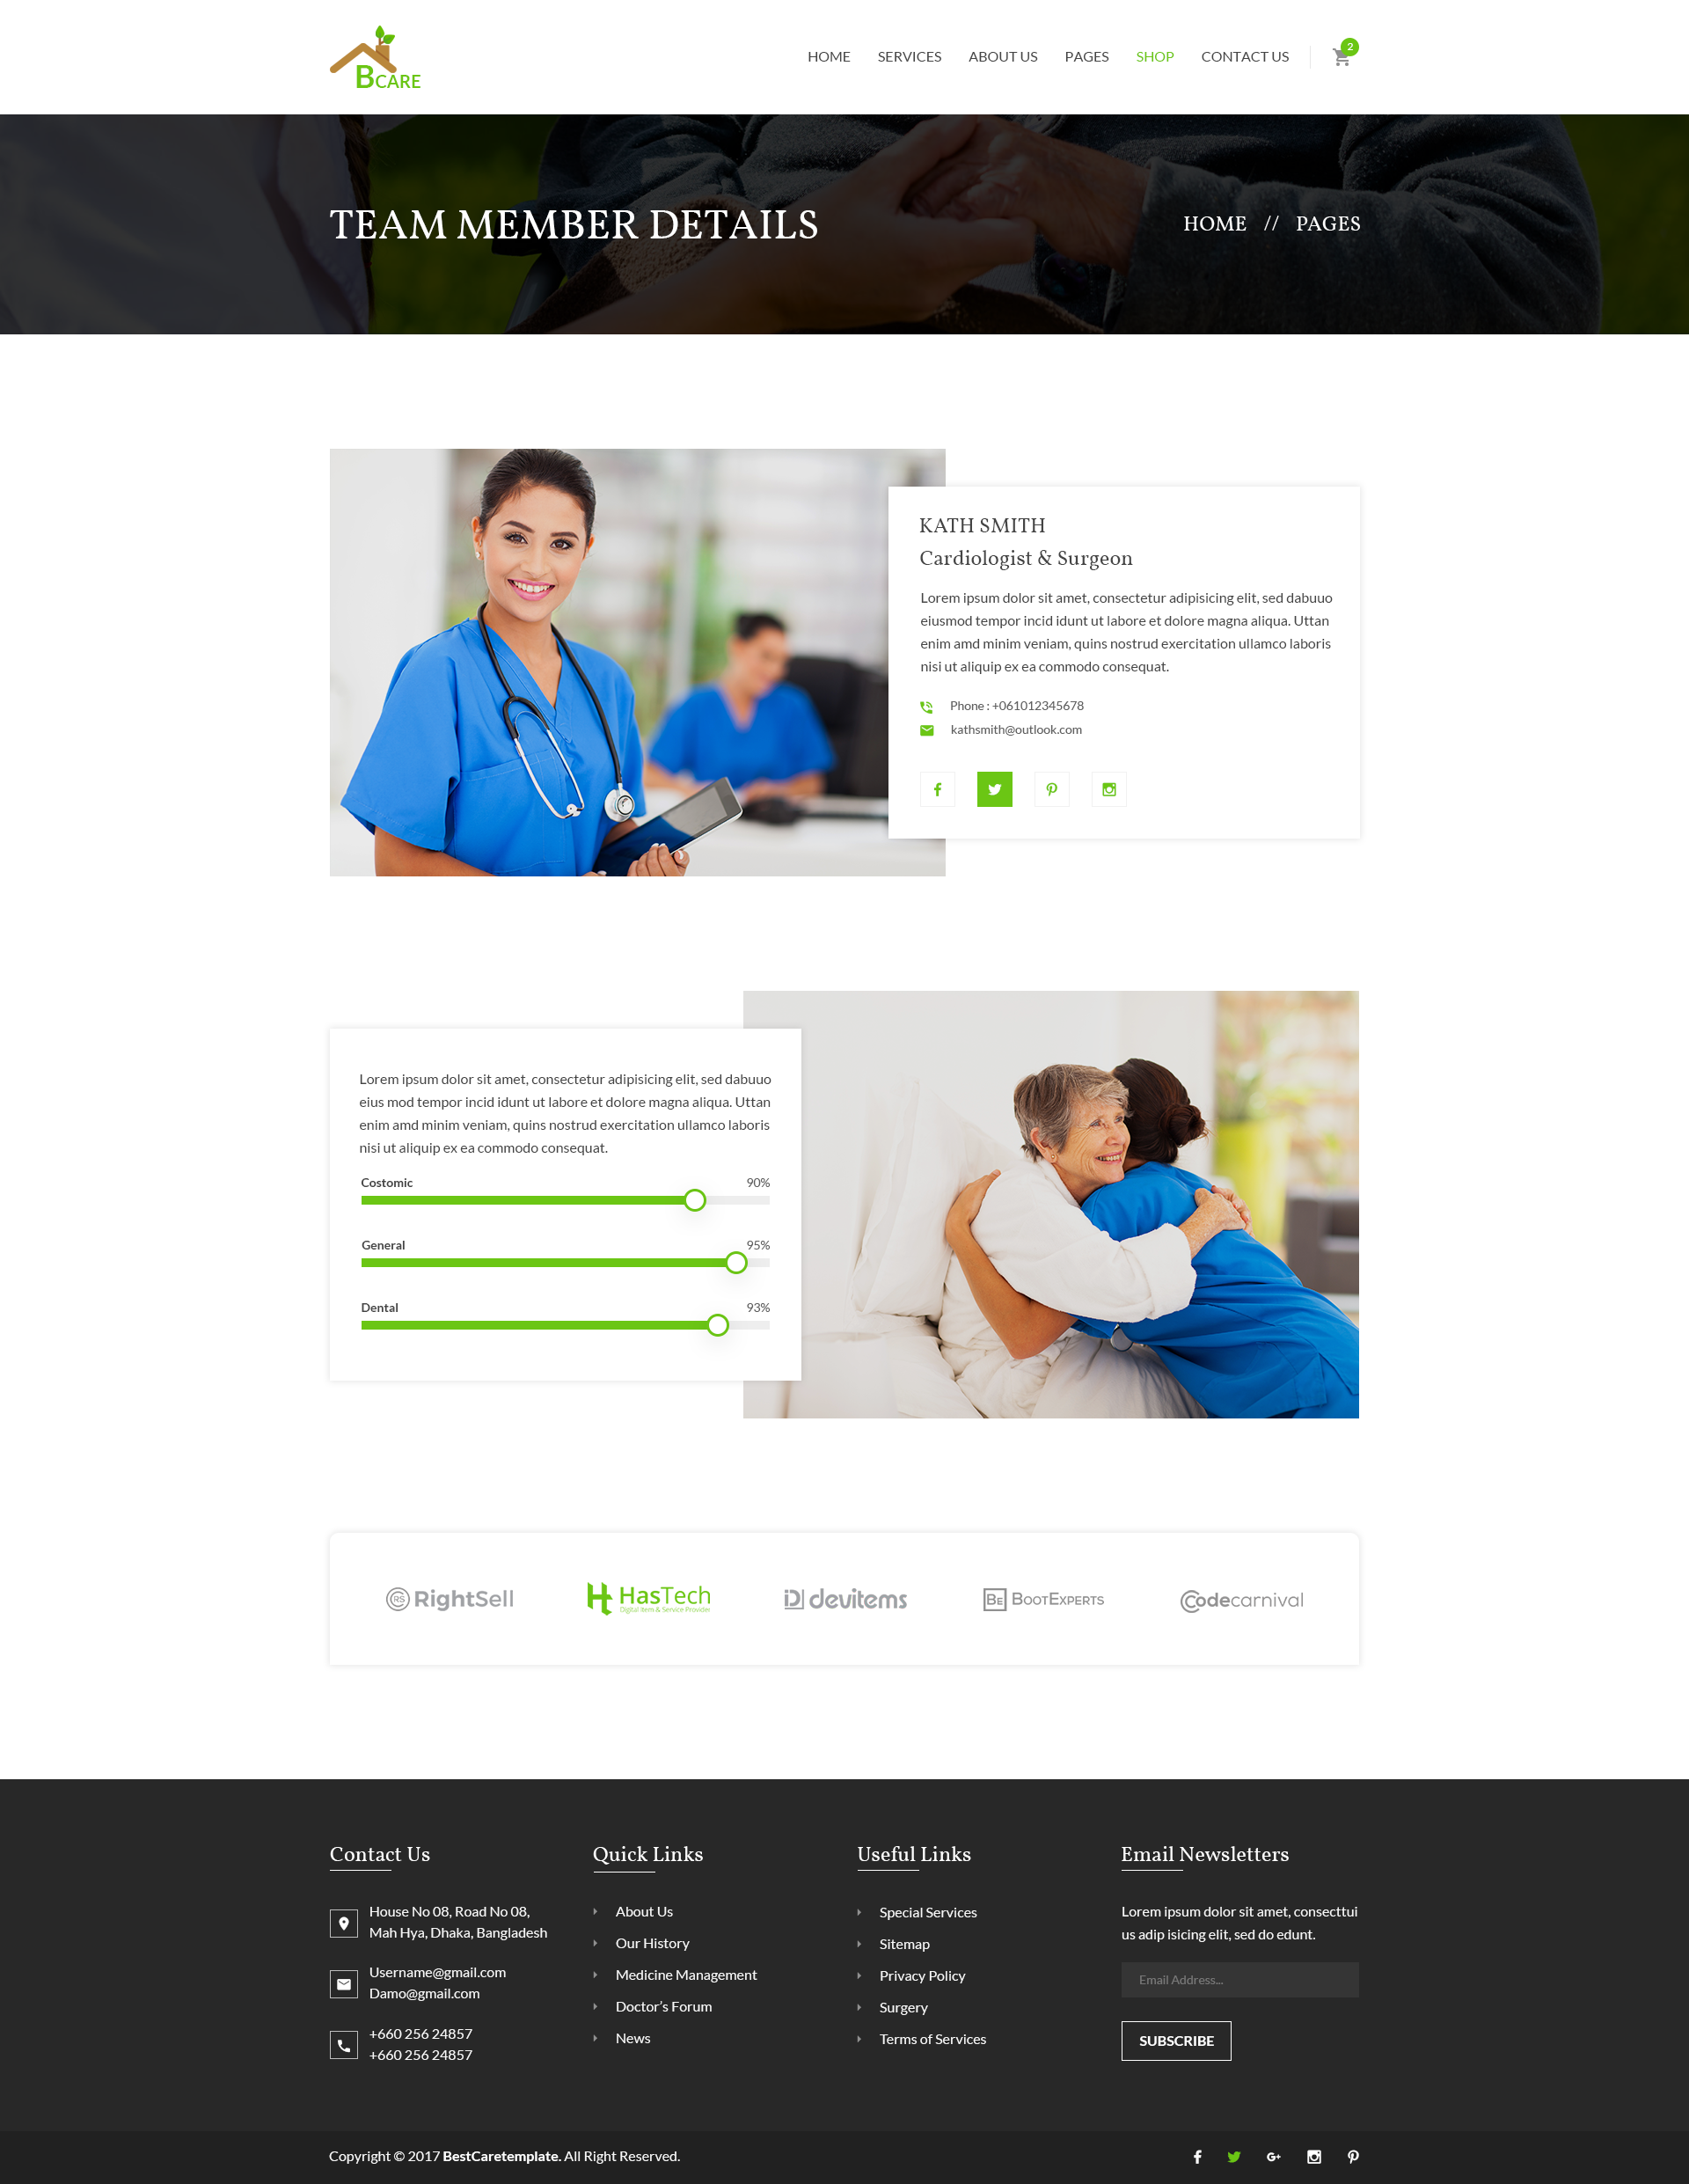 Bcare senior care psd template by codecarnival themeforest 04 team member detailsg pronofoot35fo Images